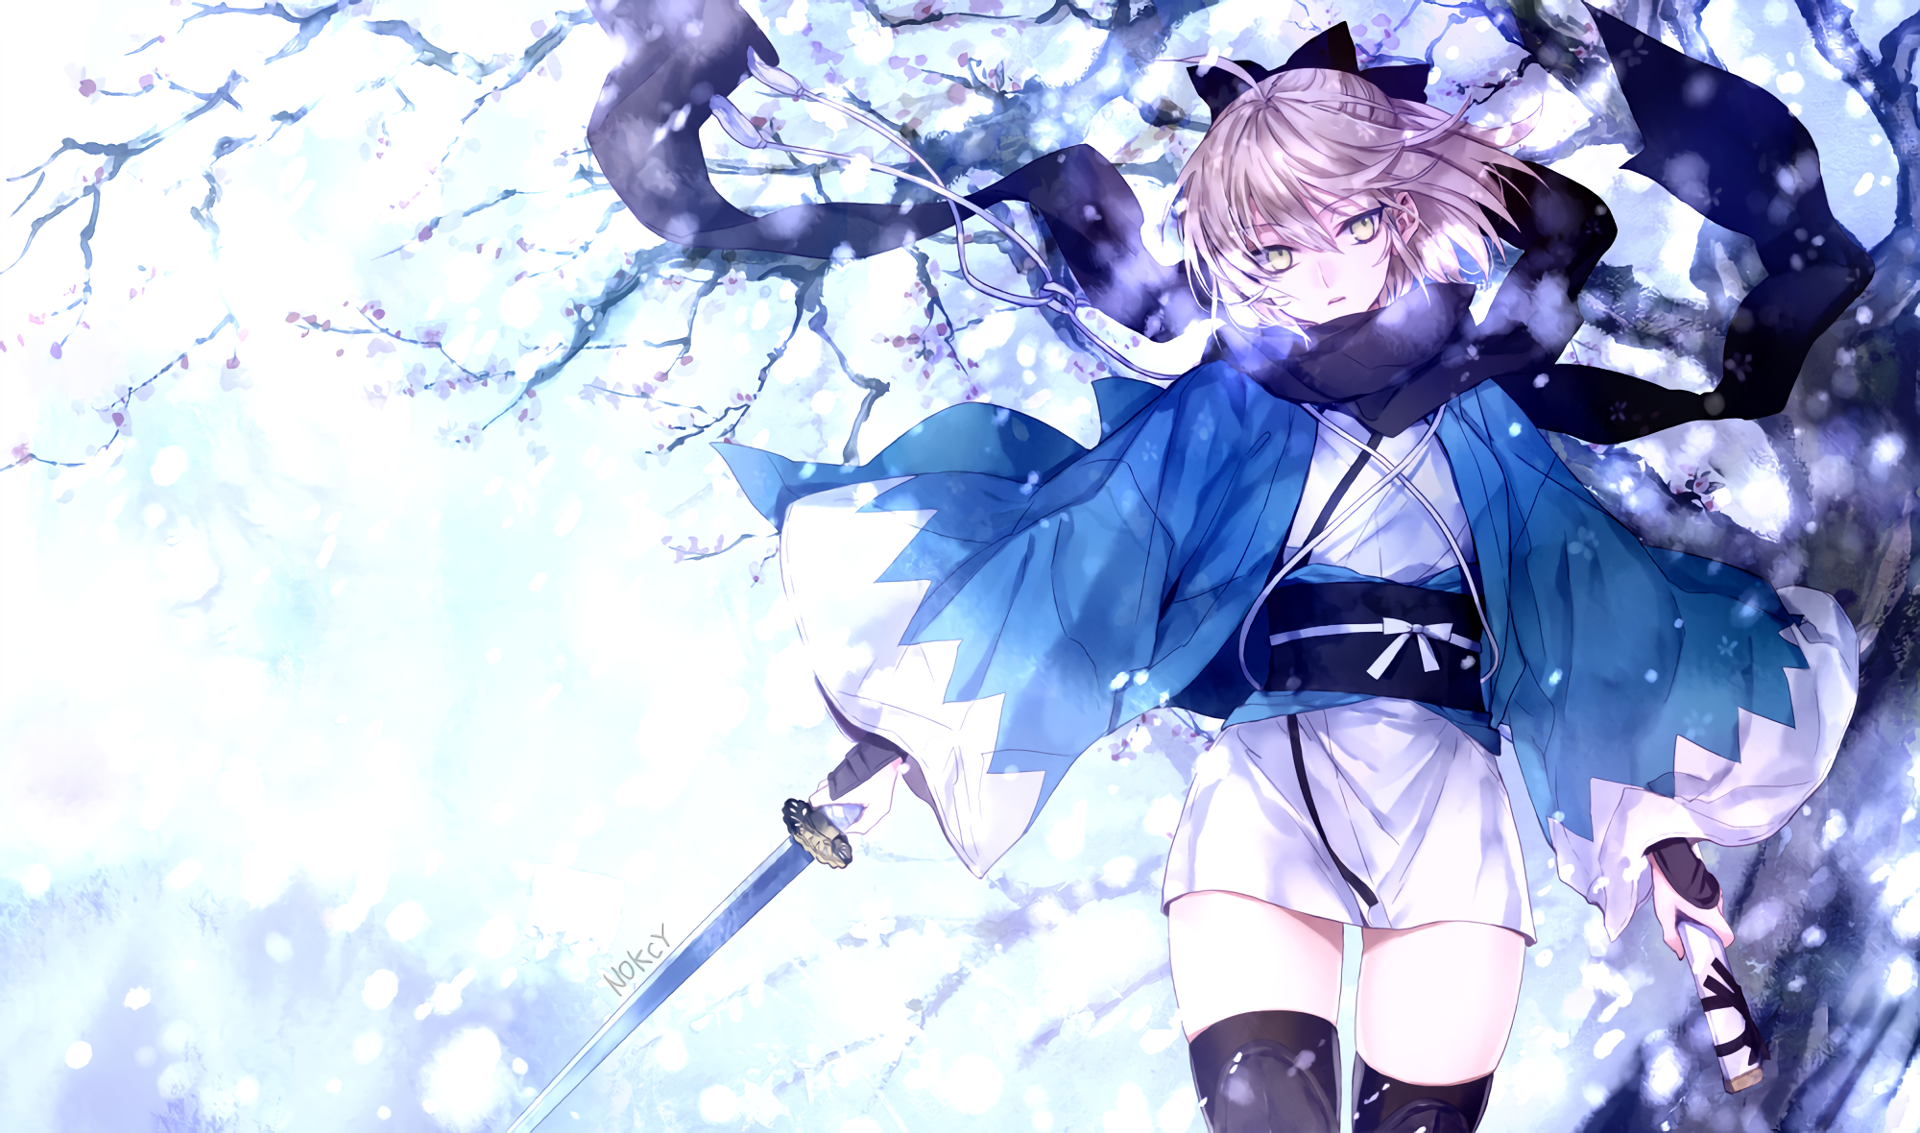 Anime - Fate/Grand Order  Saber (Fate Series) Wallpaper